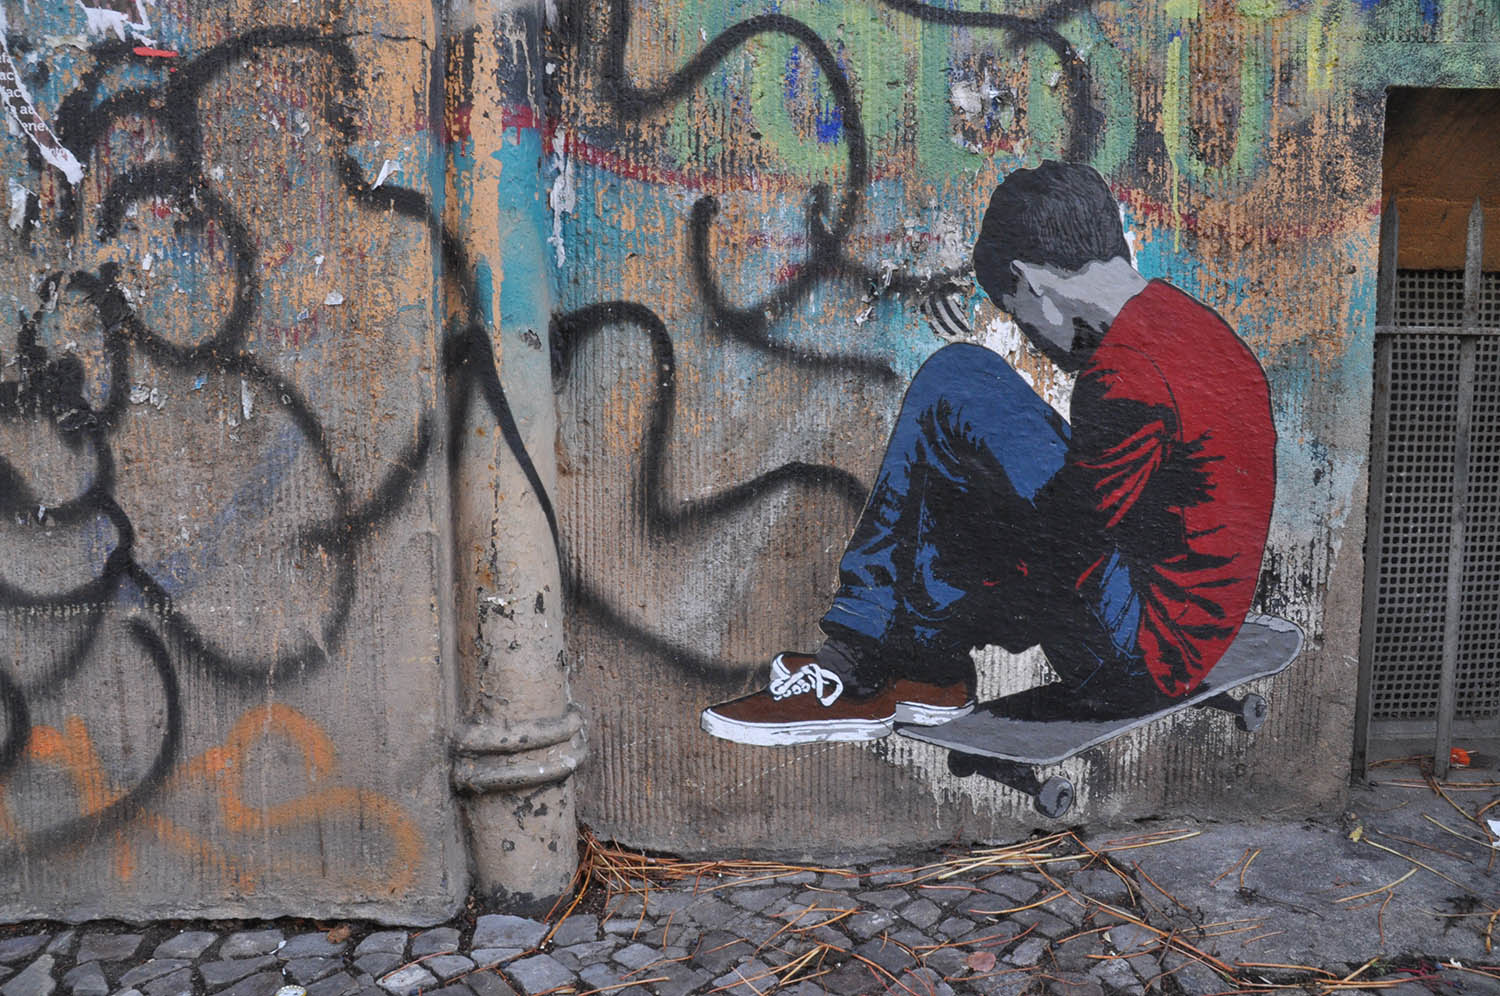 Unique Things to do in Berlin: Street Art